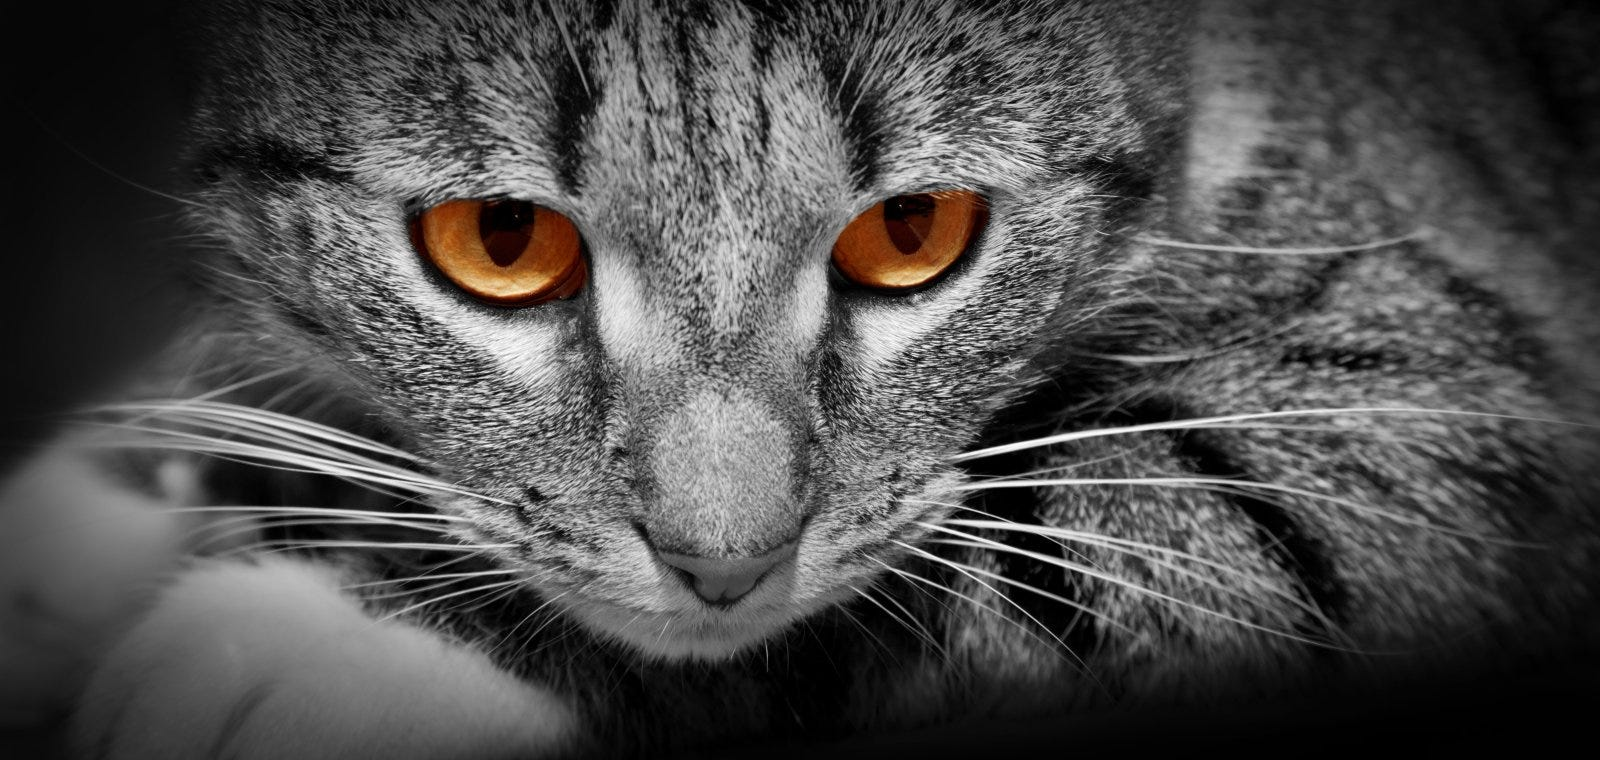 closeup of gray and black striped cat with orange eyes